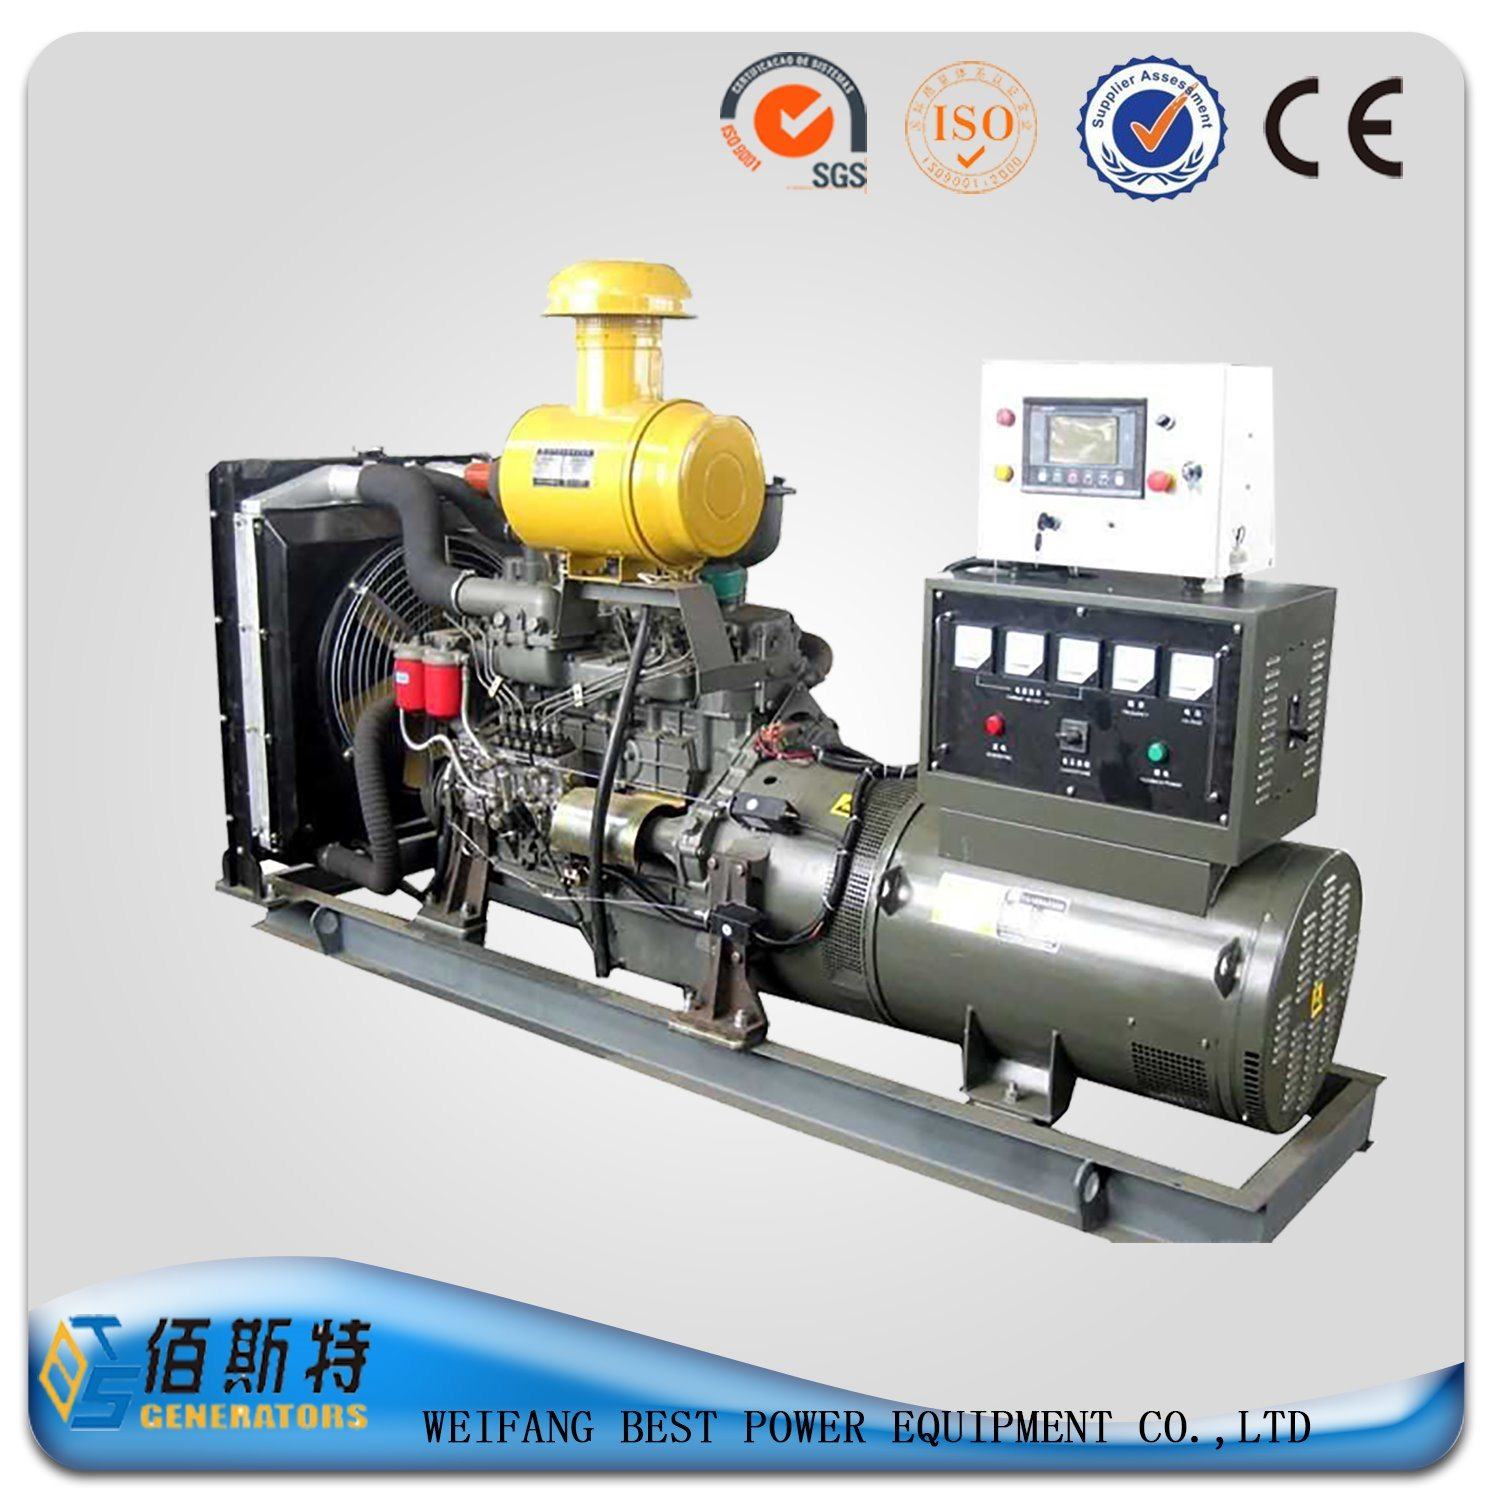 China Supplier 150HP Power Engine Diesel Genset for Sale China